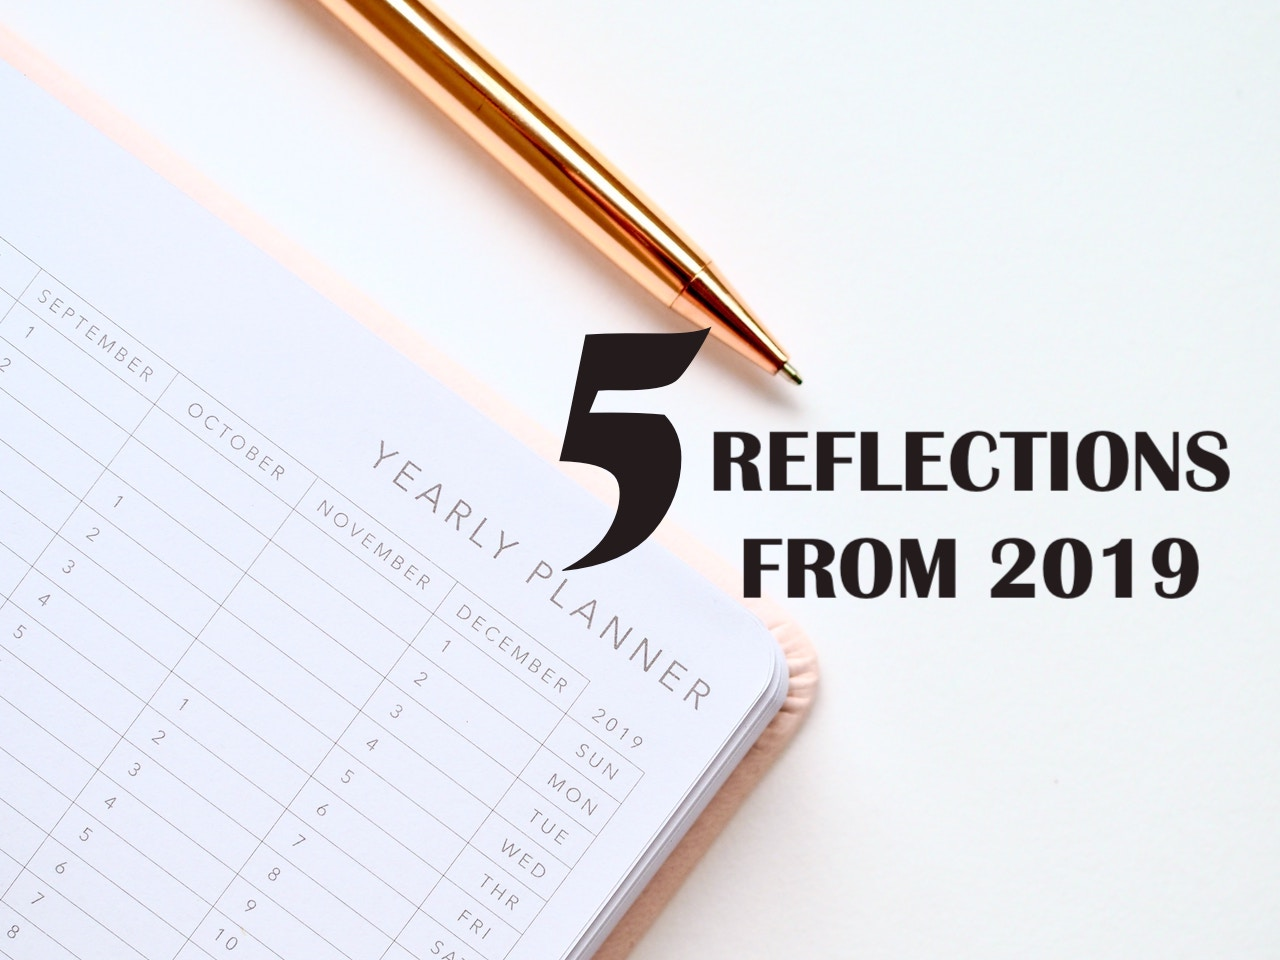 5 Reflections from 2019